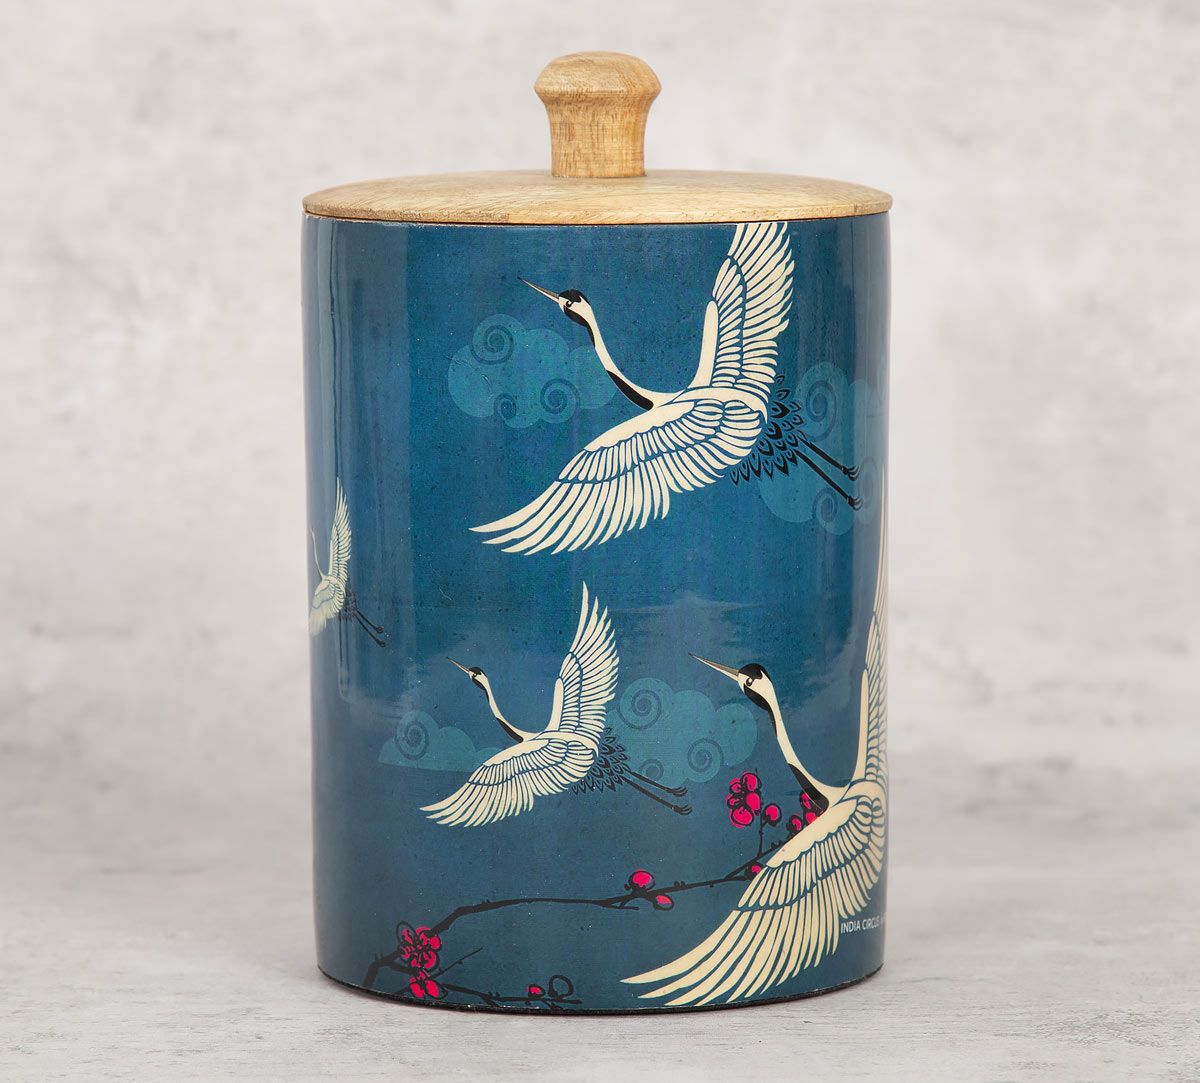 India Circus Legend of the Cranes Medium Wooden Jar